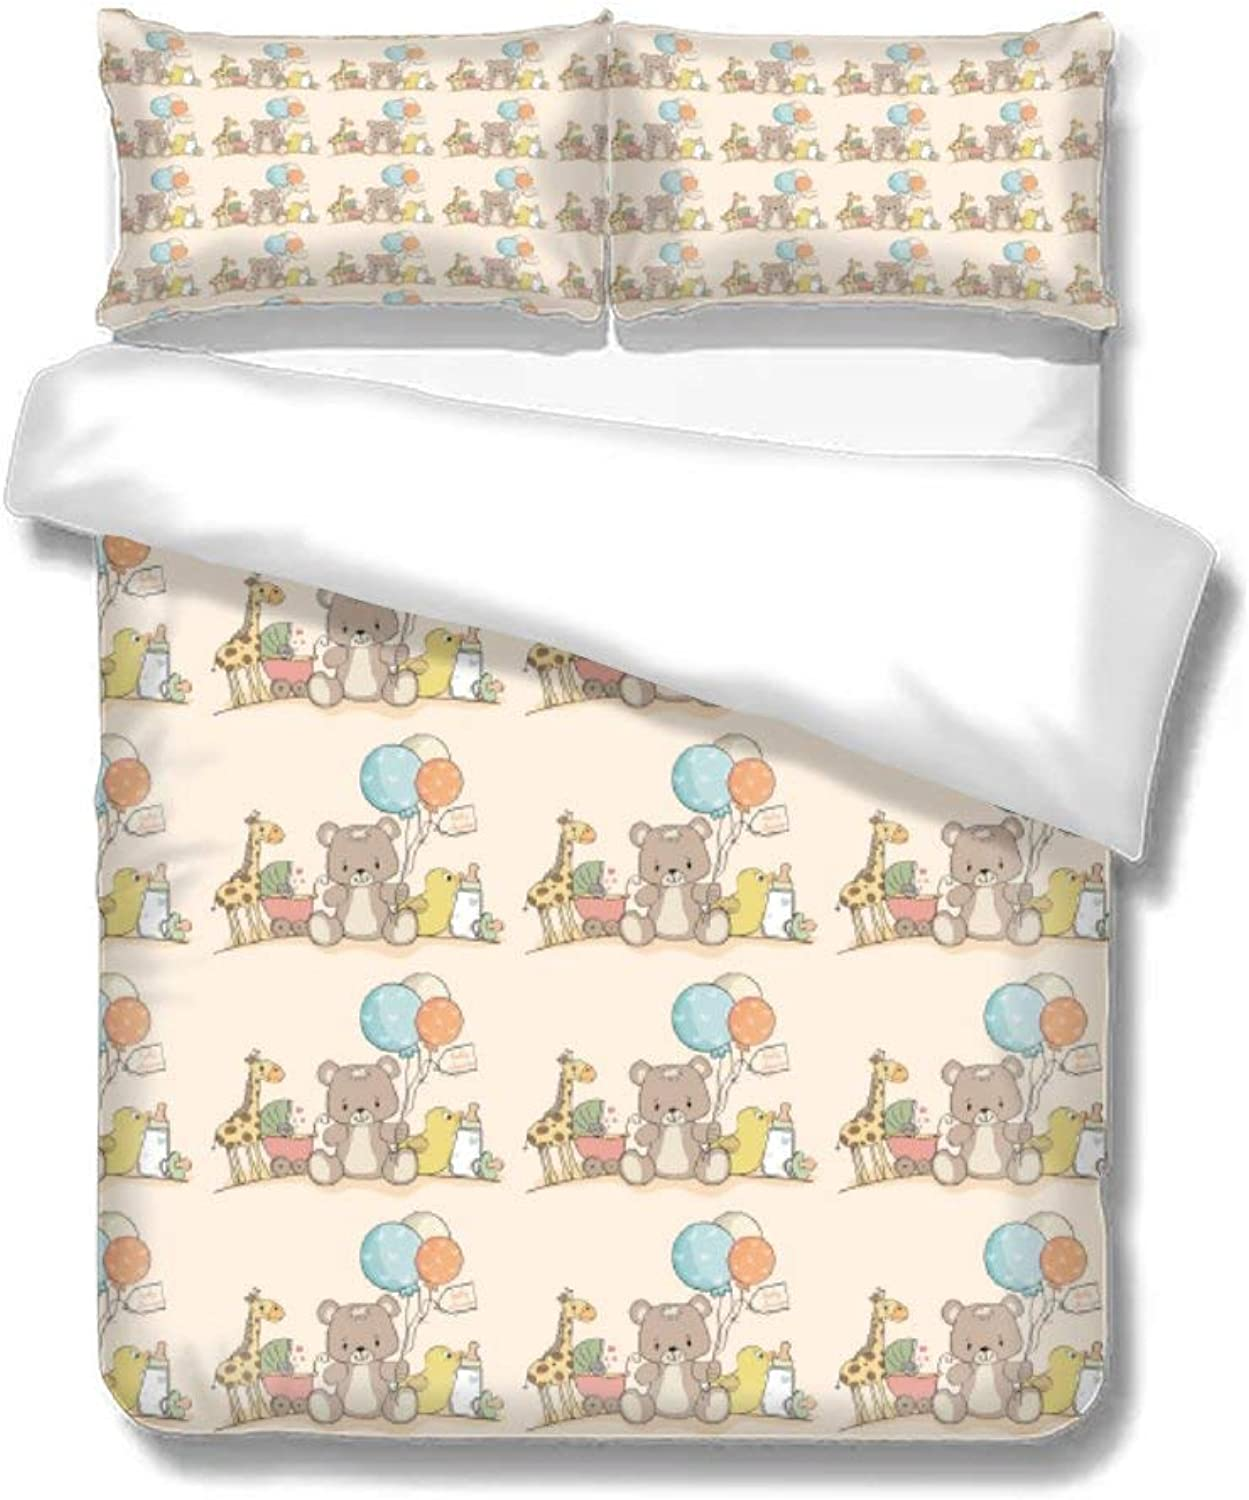 Home Bedding Duvet Cover Set Bed Sheets Set Set of Three On The Bed Bear Toy Balloon Baby Carriage Baby Bottle Newborn Soft Comfortable Breathable Twin Size